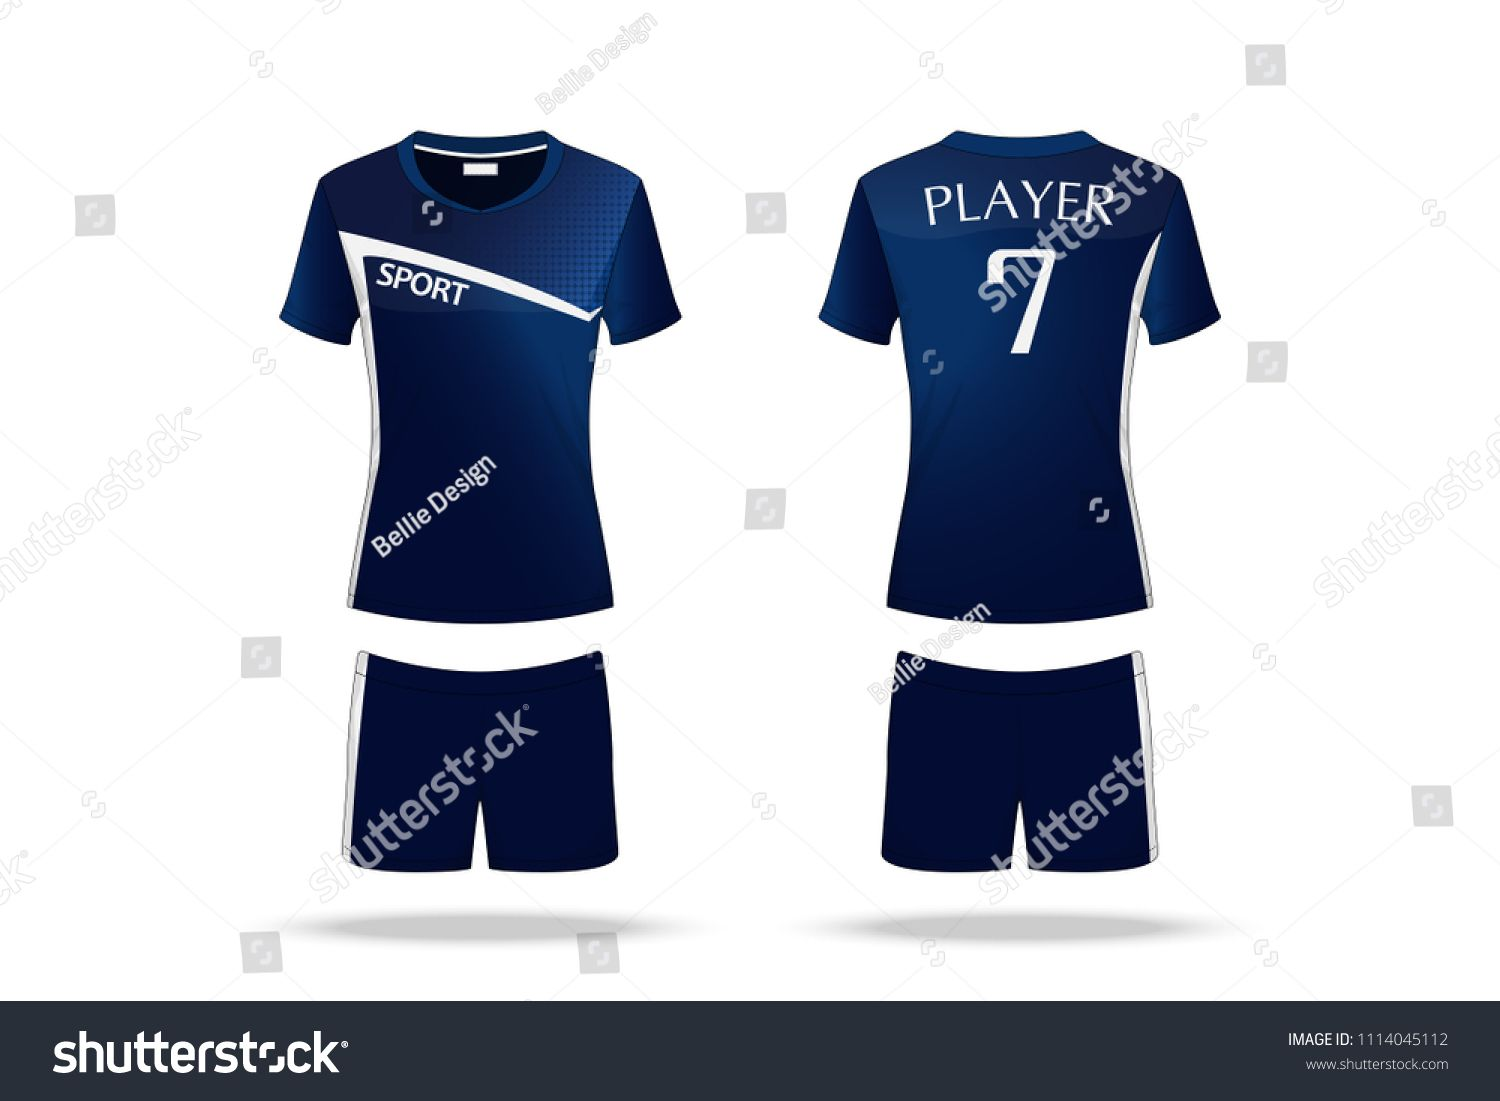 Specification Volleyball Jersey Isolated On White Background Sport T Shirt Round Neck And Short Pants Template Sport T Shirt Volleyball Jerseys Team Uniforms